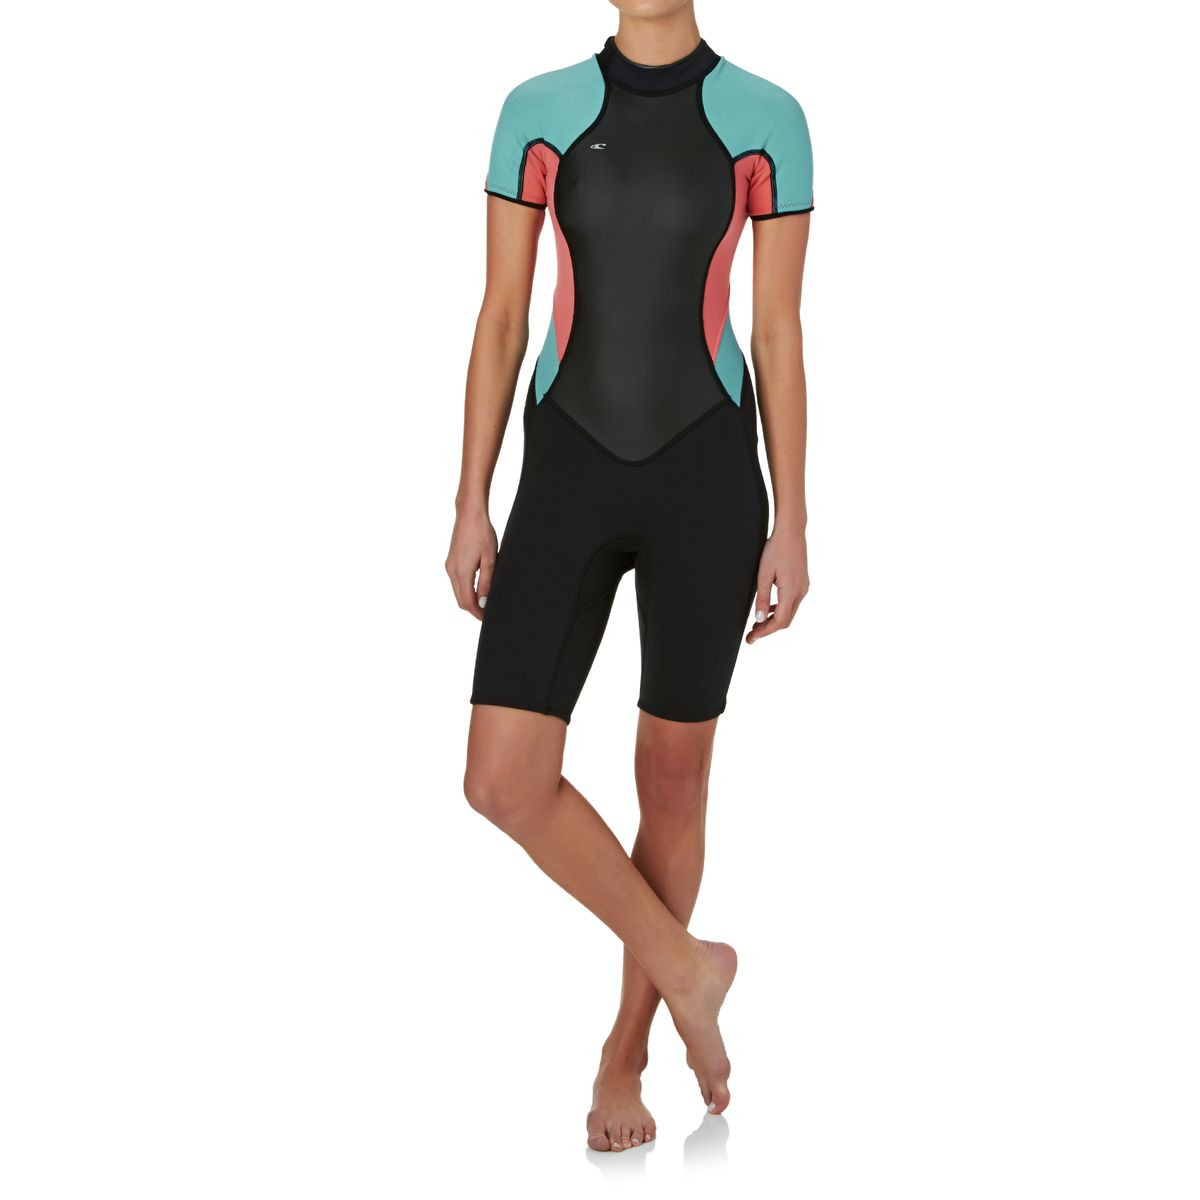 O'Neill Womens Bahia 2/1mm Back Zip Short Sleeve Shorty Wetsuit - Black/ Coral/ Light Aqua